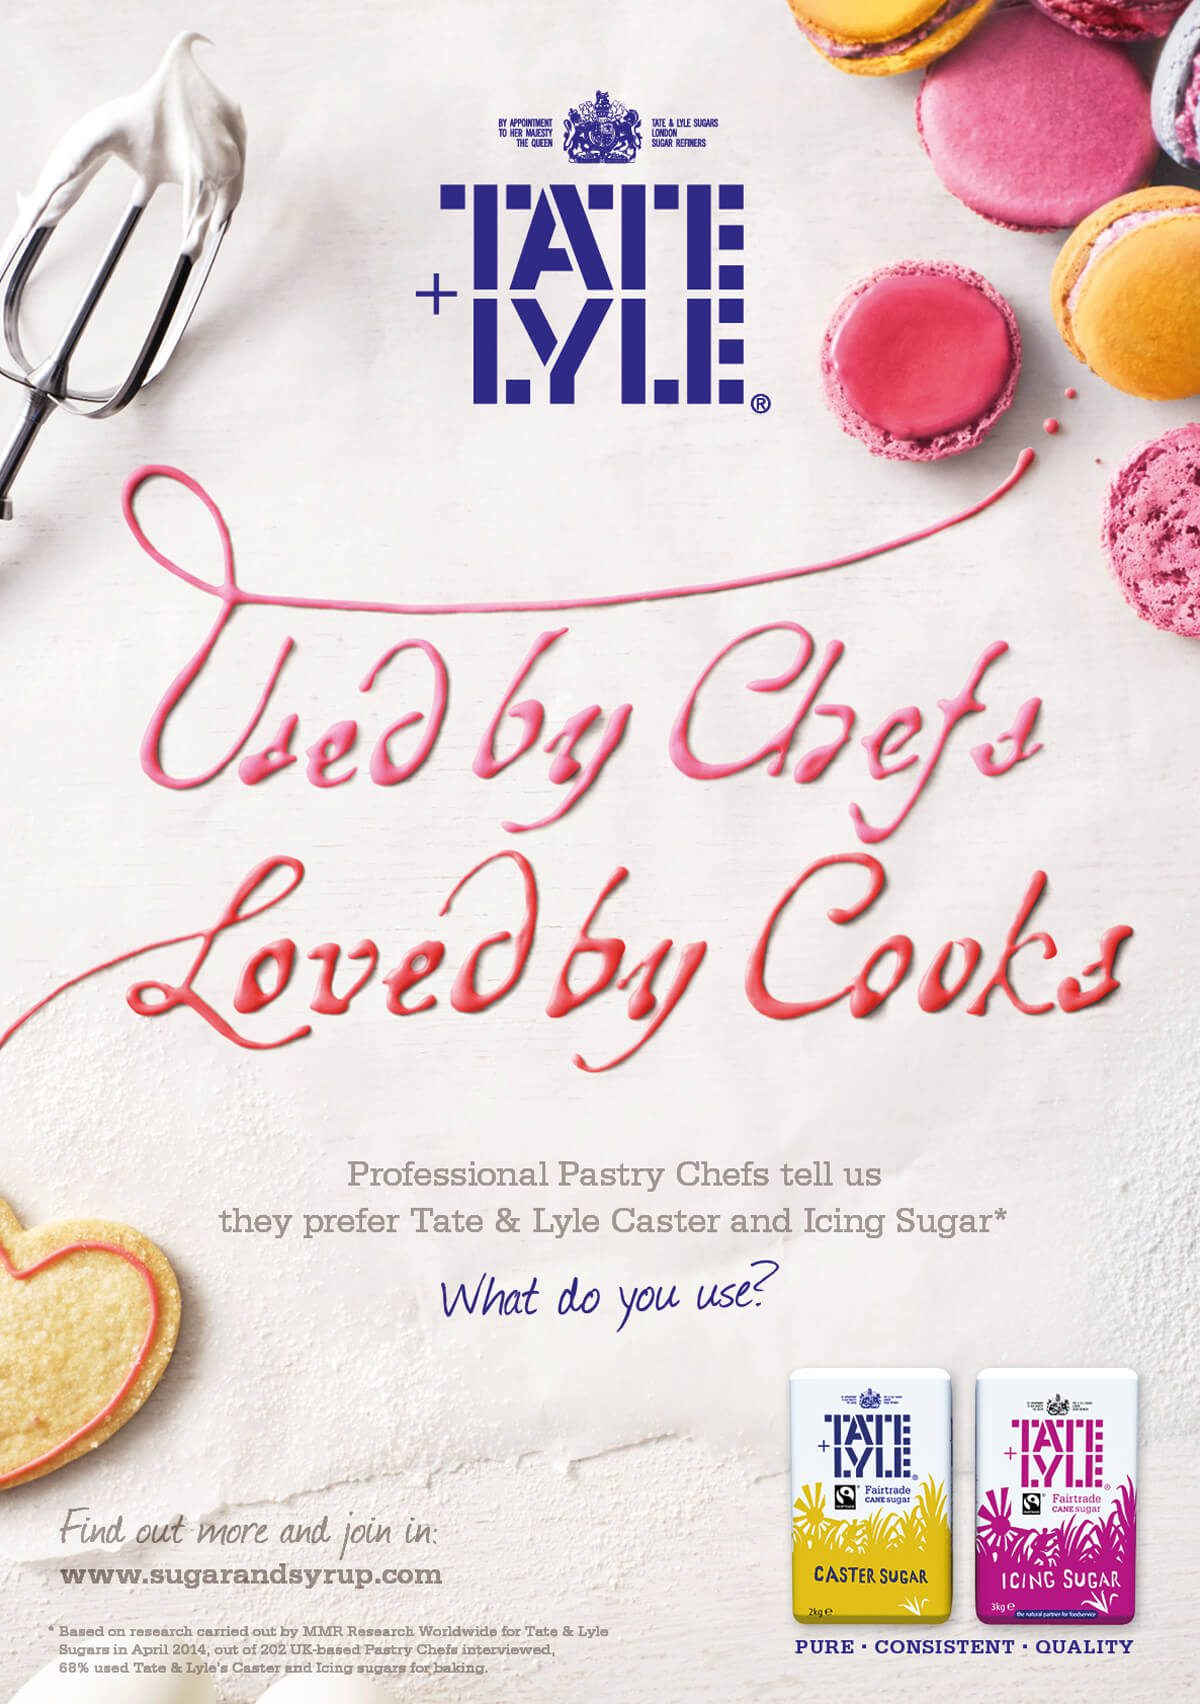 tate-and-lyle-used-by-chefs-loved-by-cooks-advert-design.jpg#asset:1149